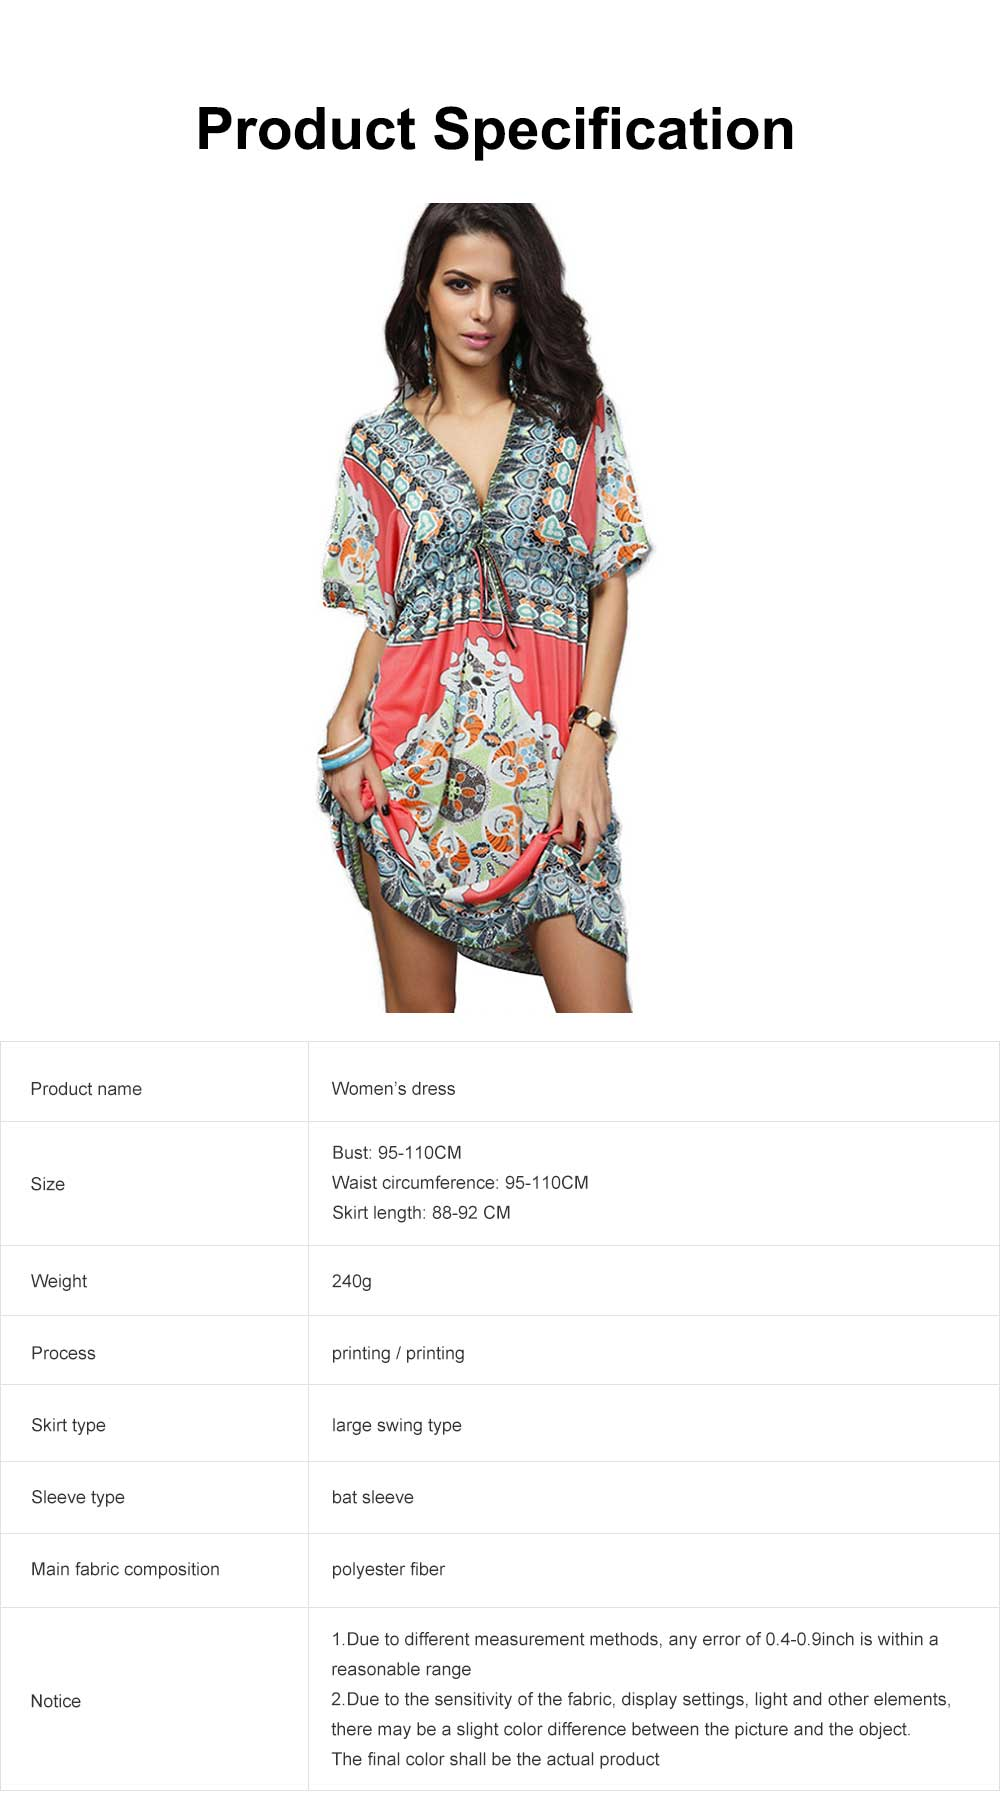 Women's Sexy Dress, Summer V-neck Bohemian Floral Printed Mini Dress, Knee High Dress with Belt for Gifts 6